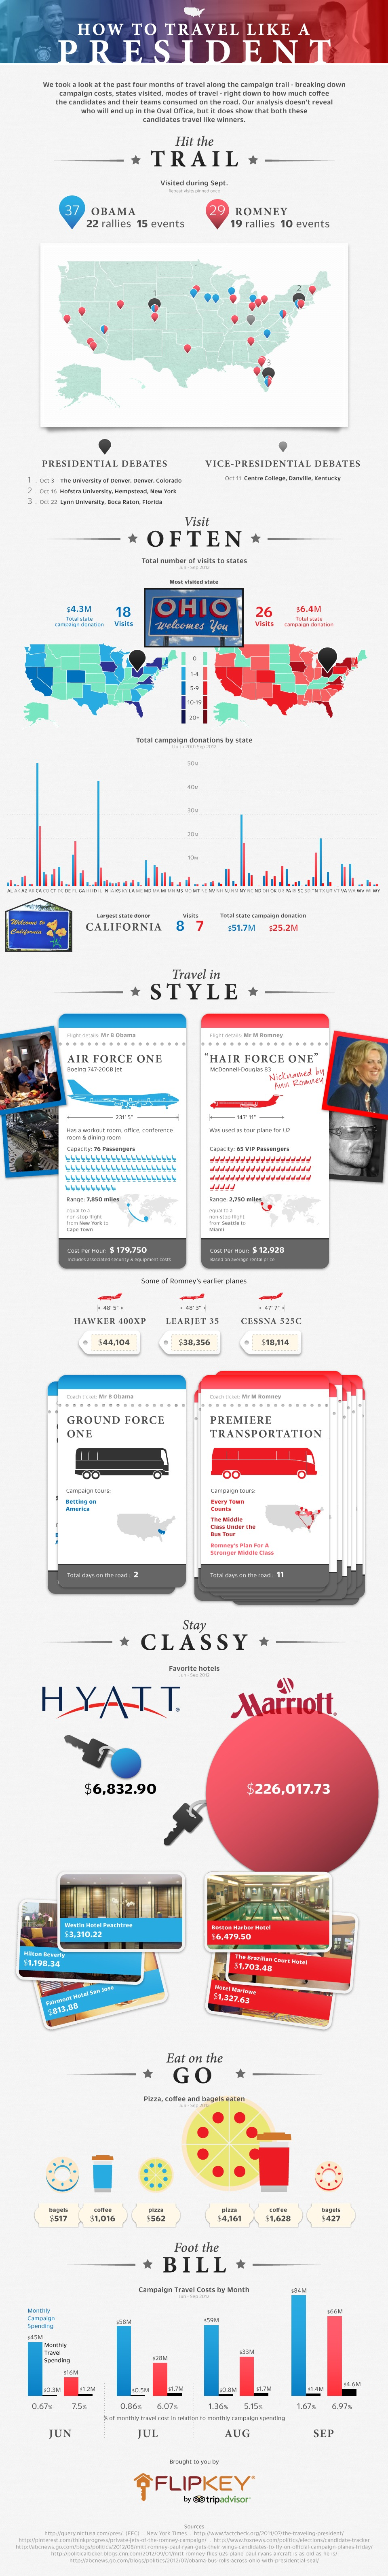 US President Travel Expense-Infographic